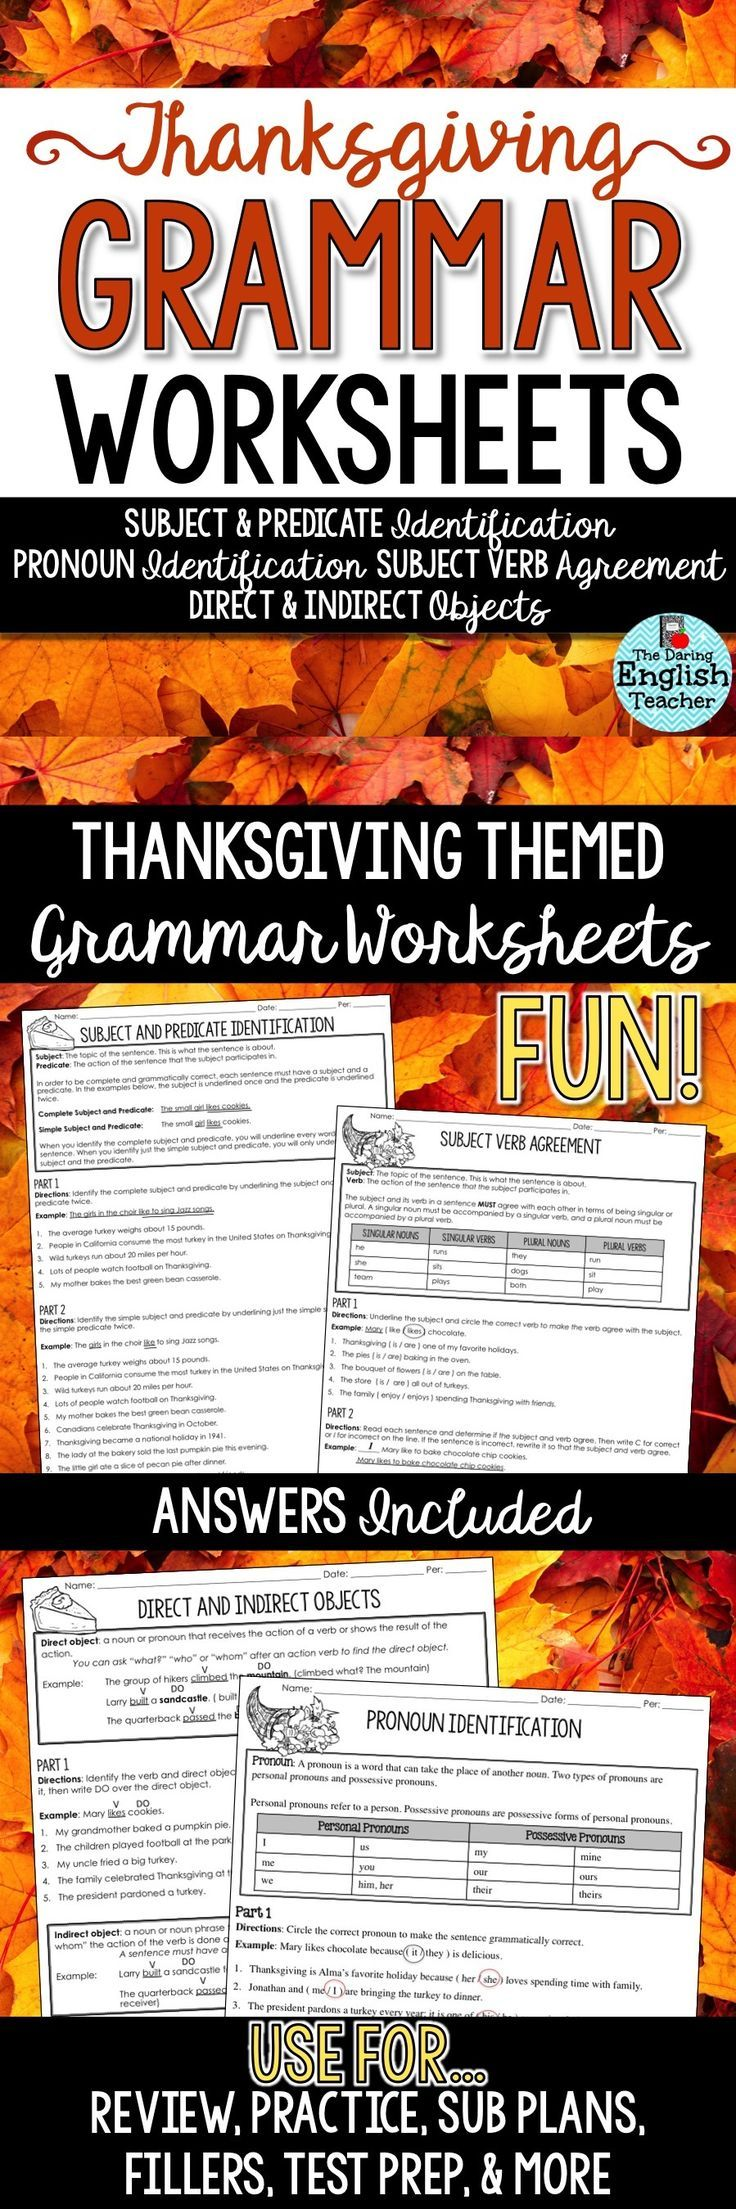 Help students improve their grammar skills with Thanksgiving grammar worksheets for the secondary ELA classroom.